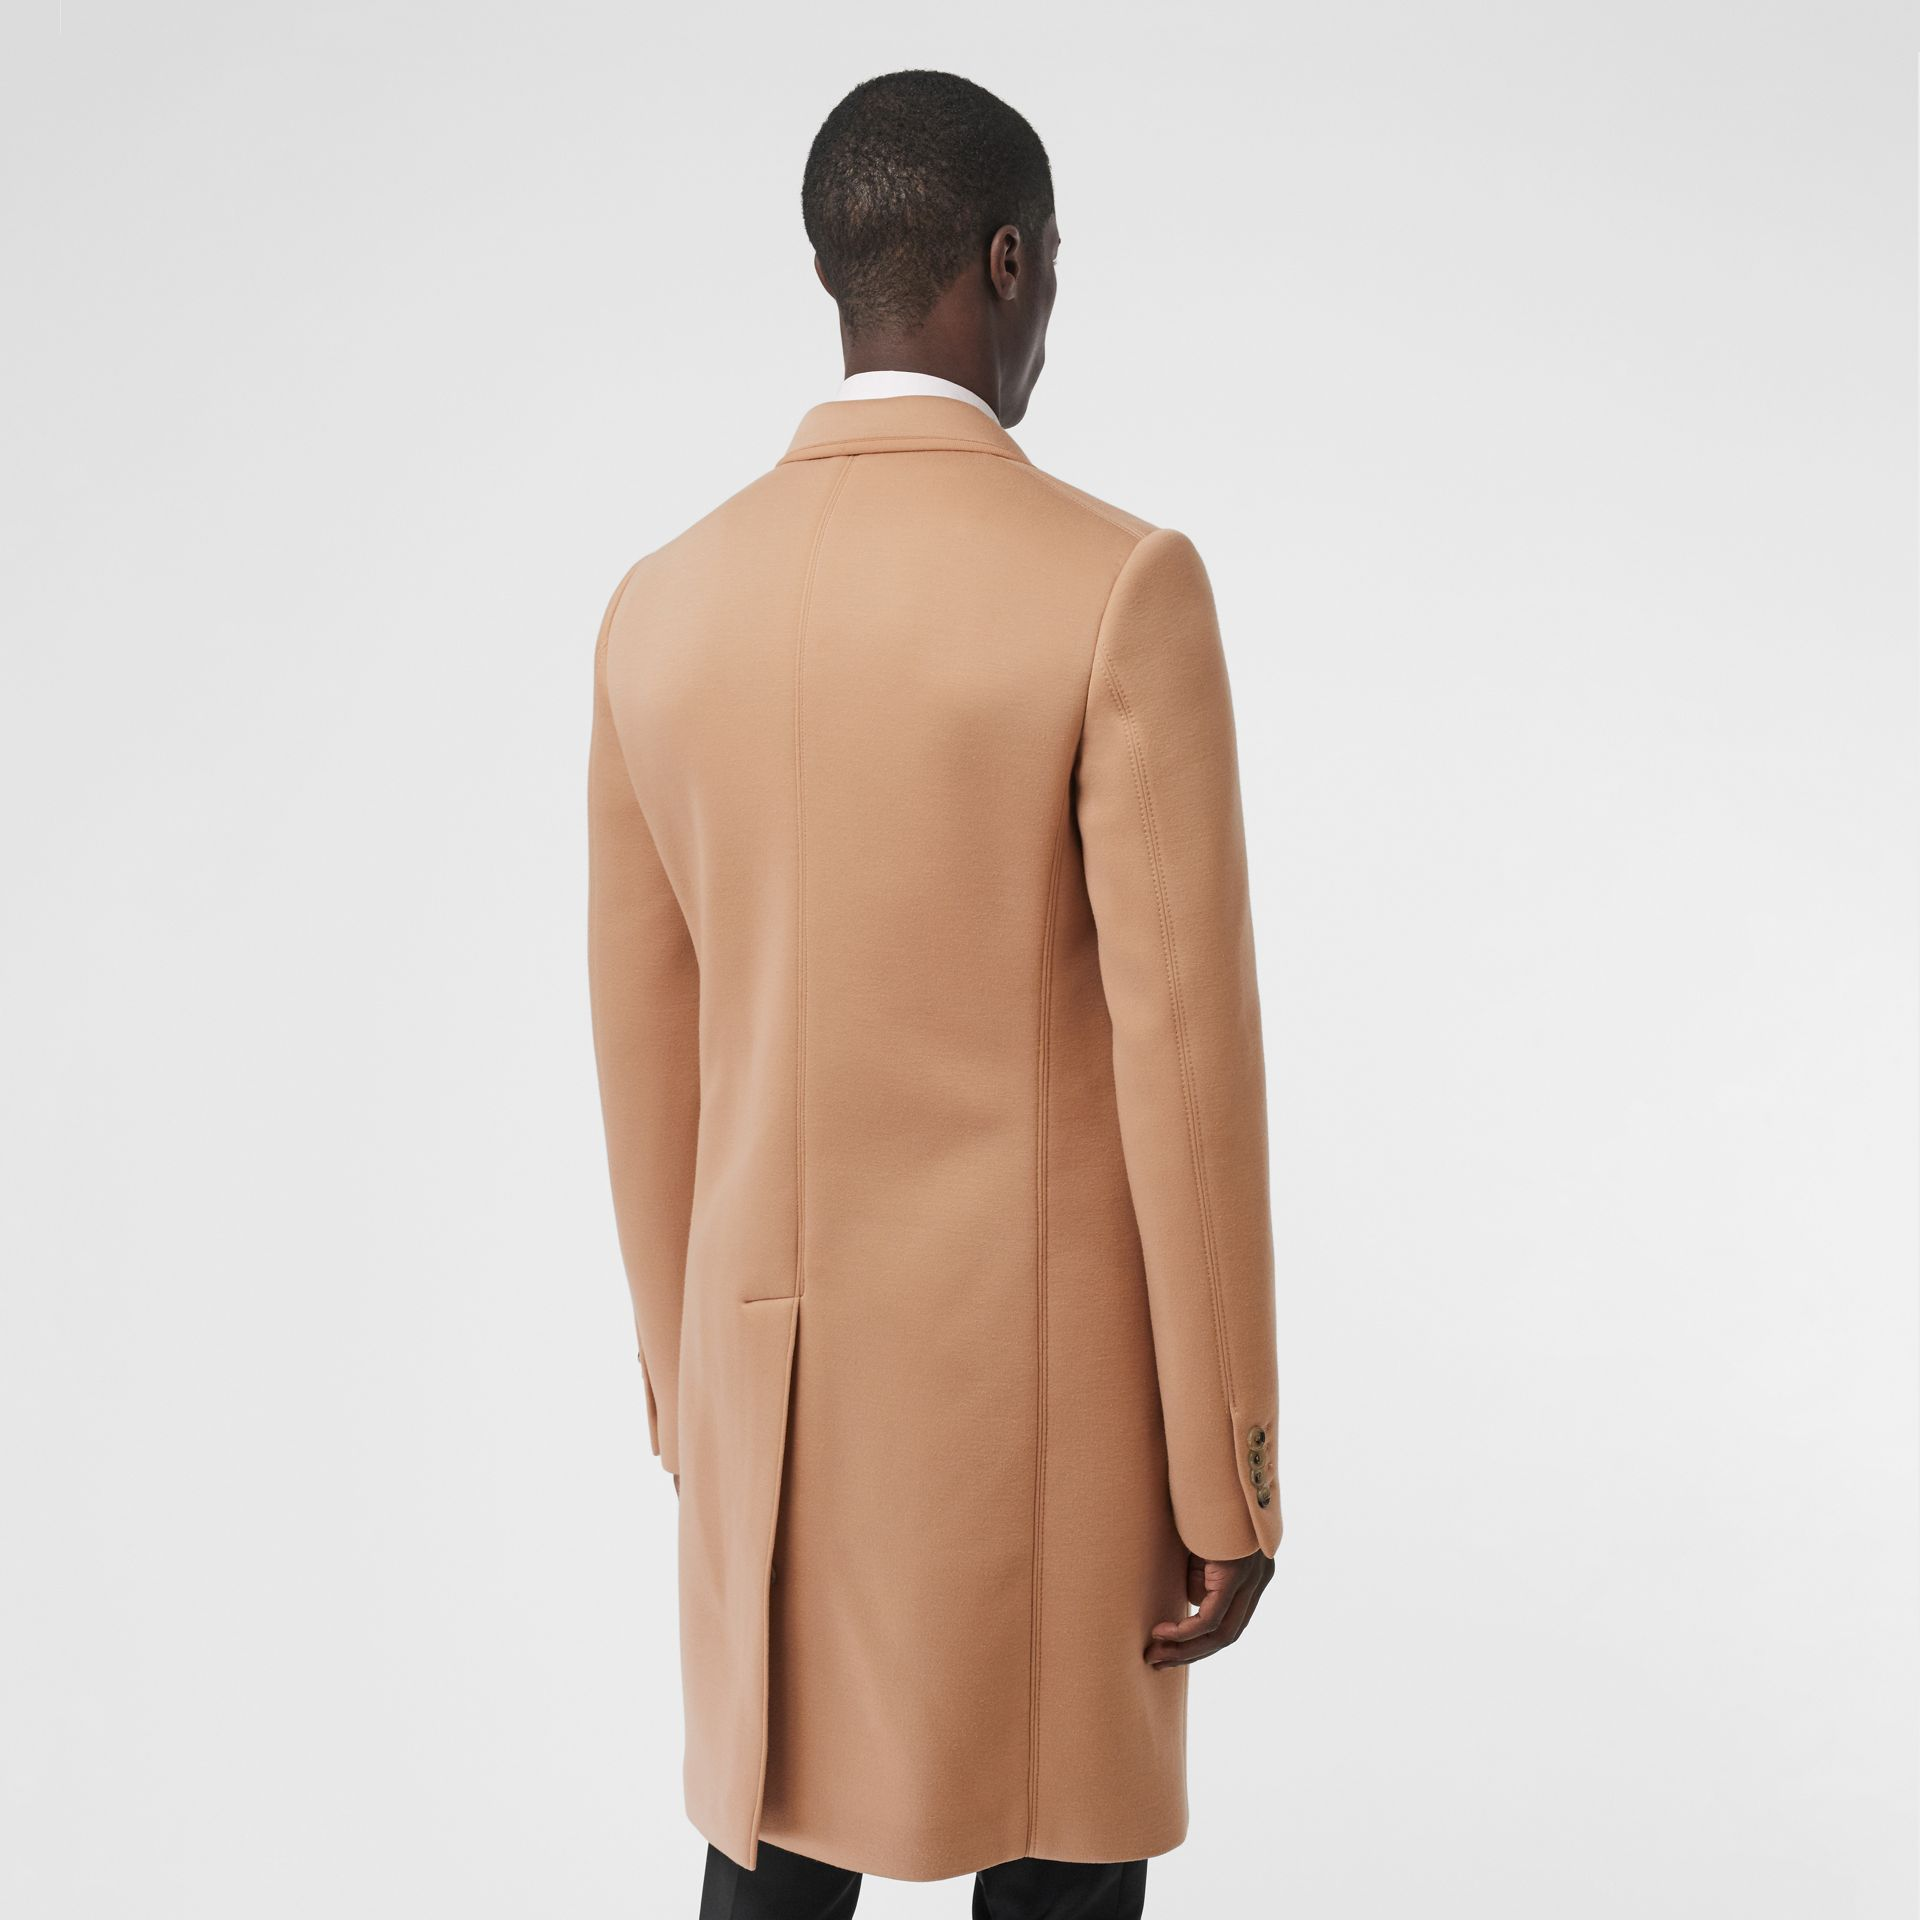 Neoprene Tailored Coat in Beige | Burberry - gallery image 2